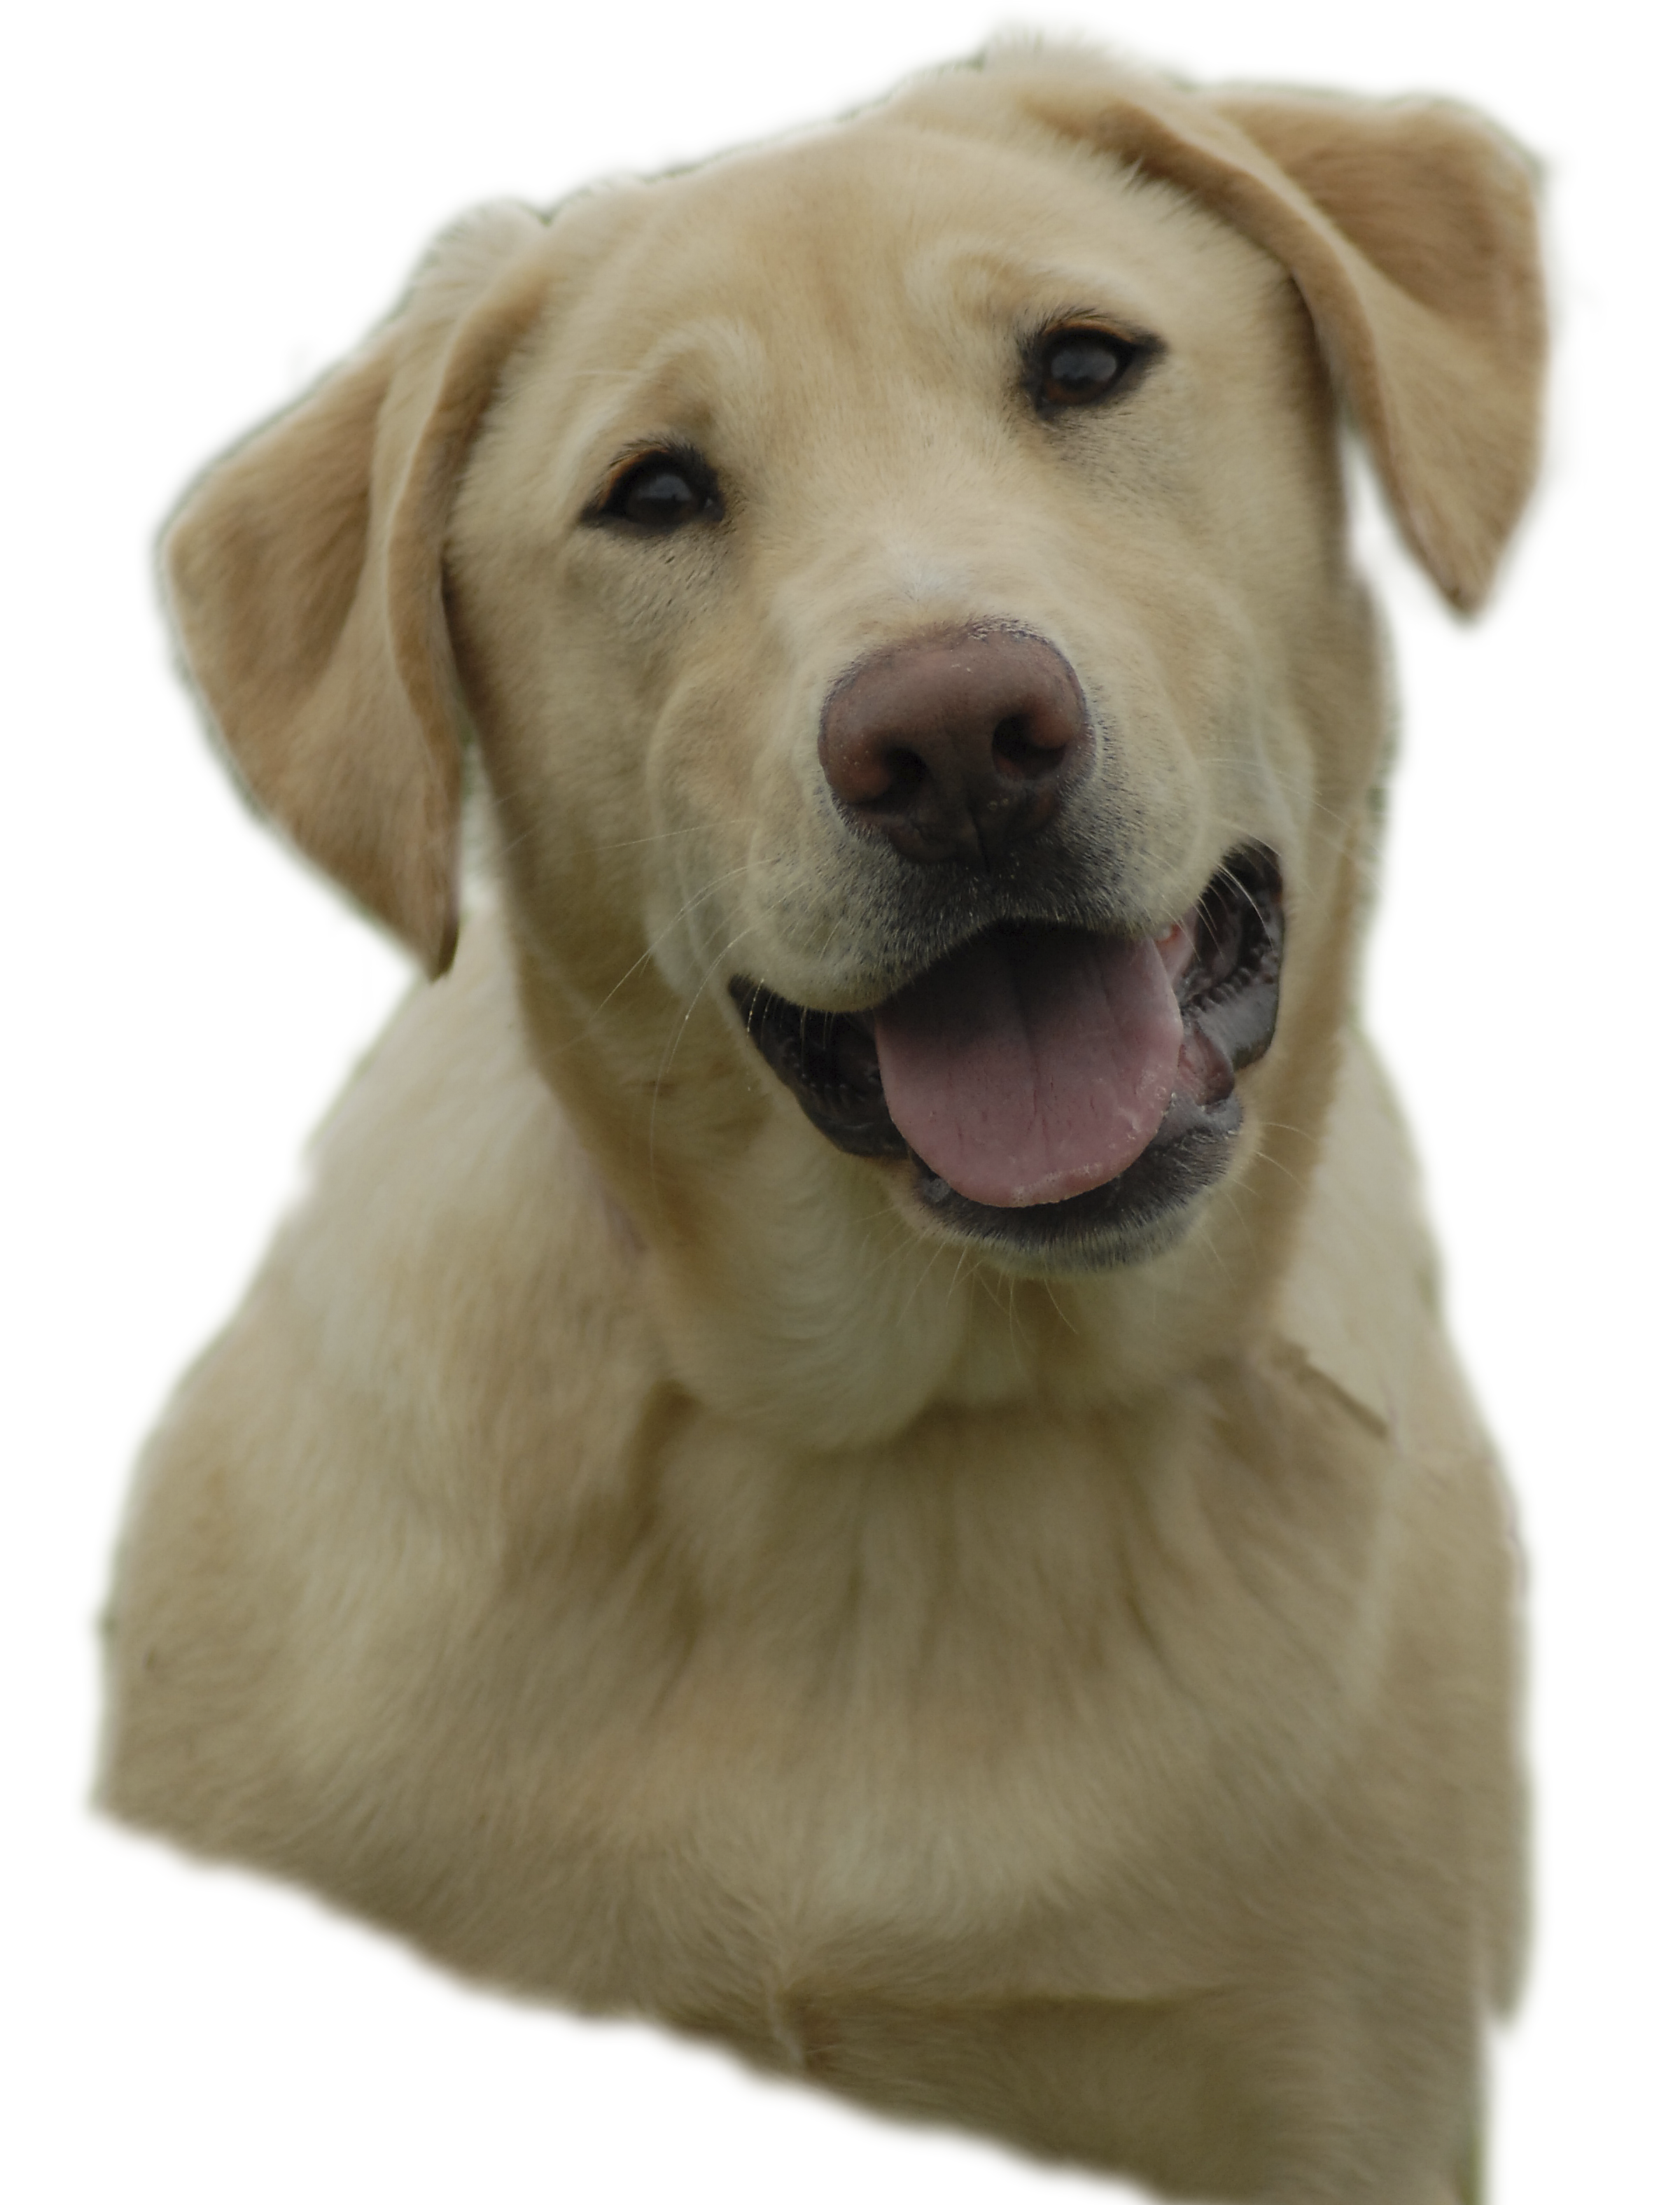 Paws clipart yellow dog. Yellowlab free images at